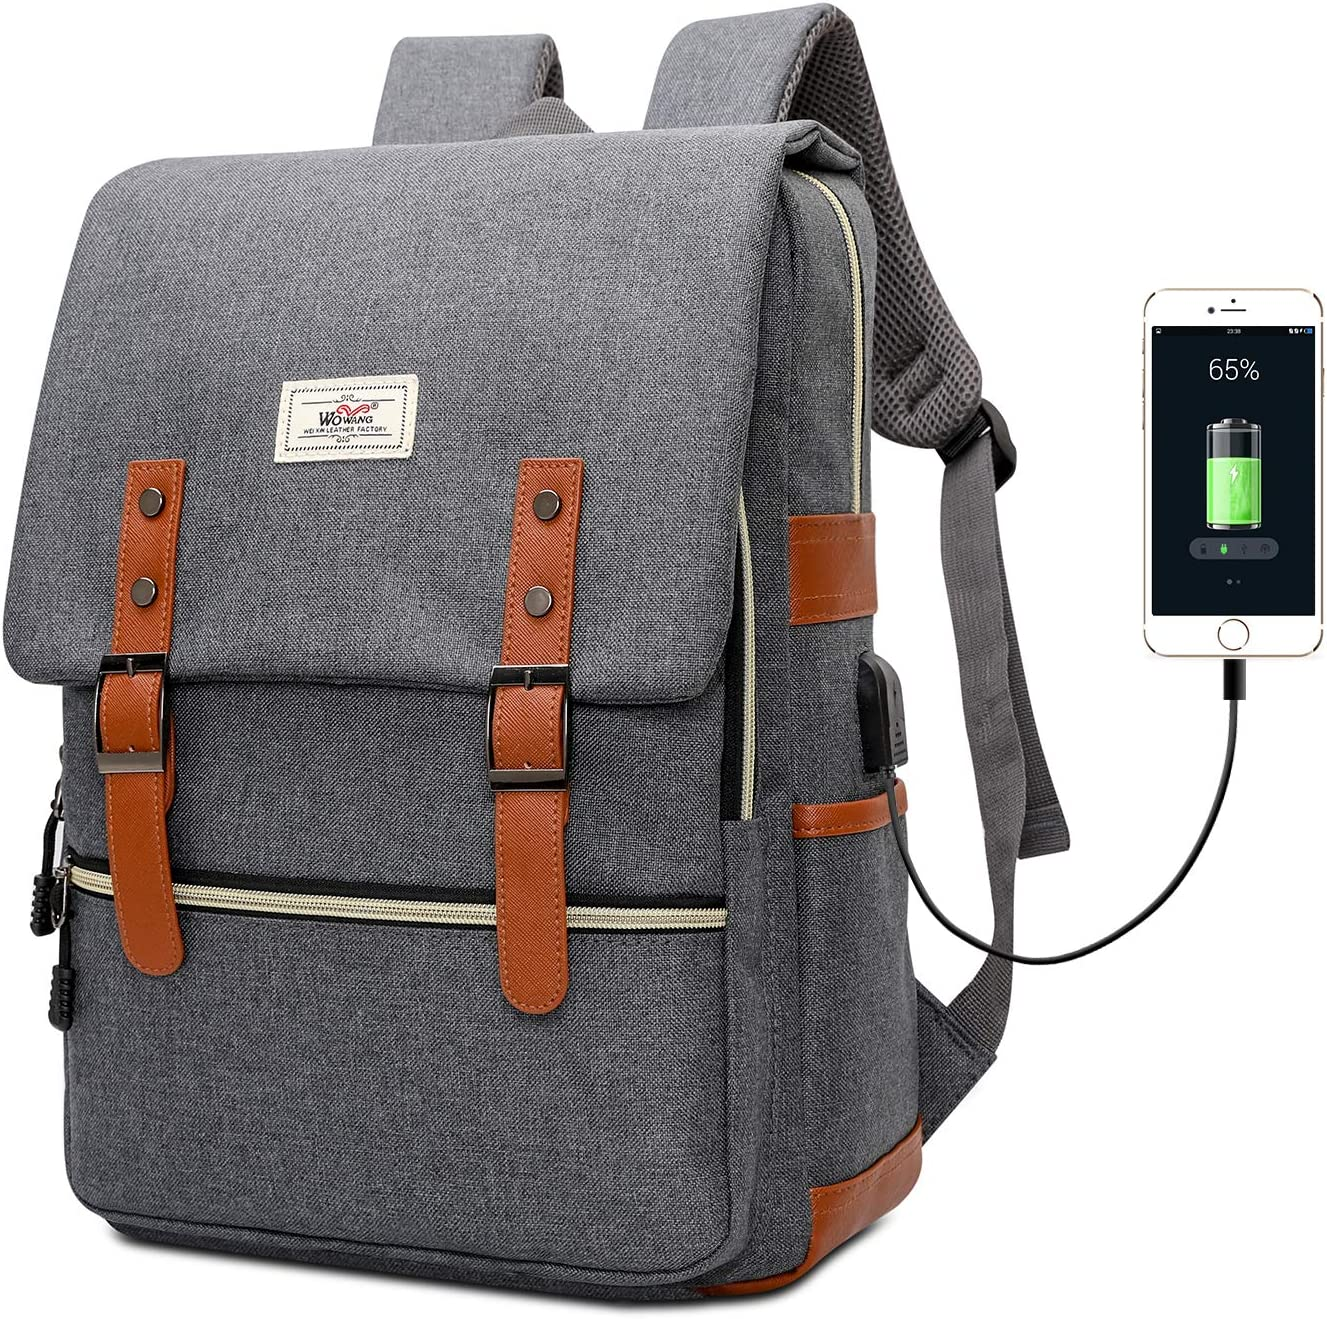 Vintage Slim Laptop Backpack, Unisex Fashion College School Bookbag with USB Charging Port, Waterproof Business Travel Daypack, Fits 15.6 Inch Laptop Notebook